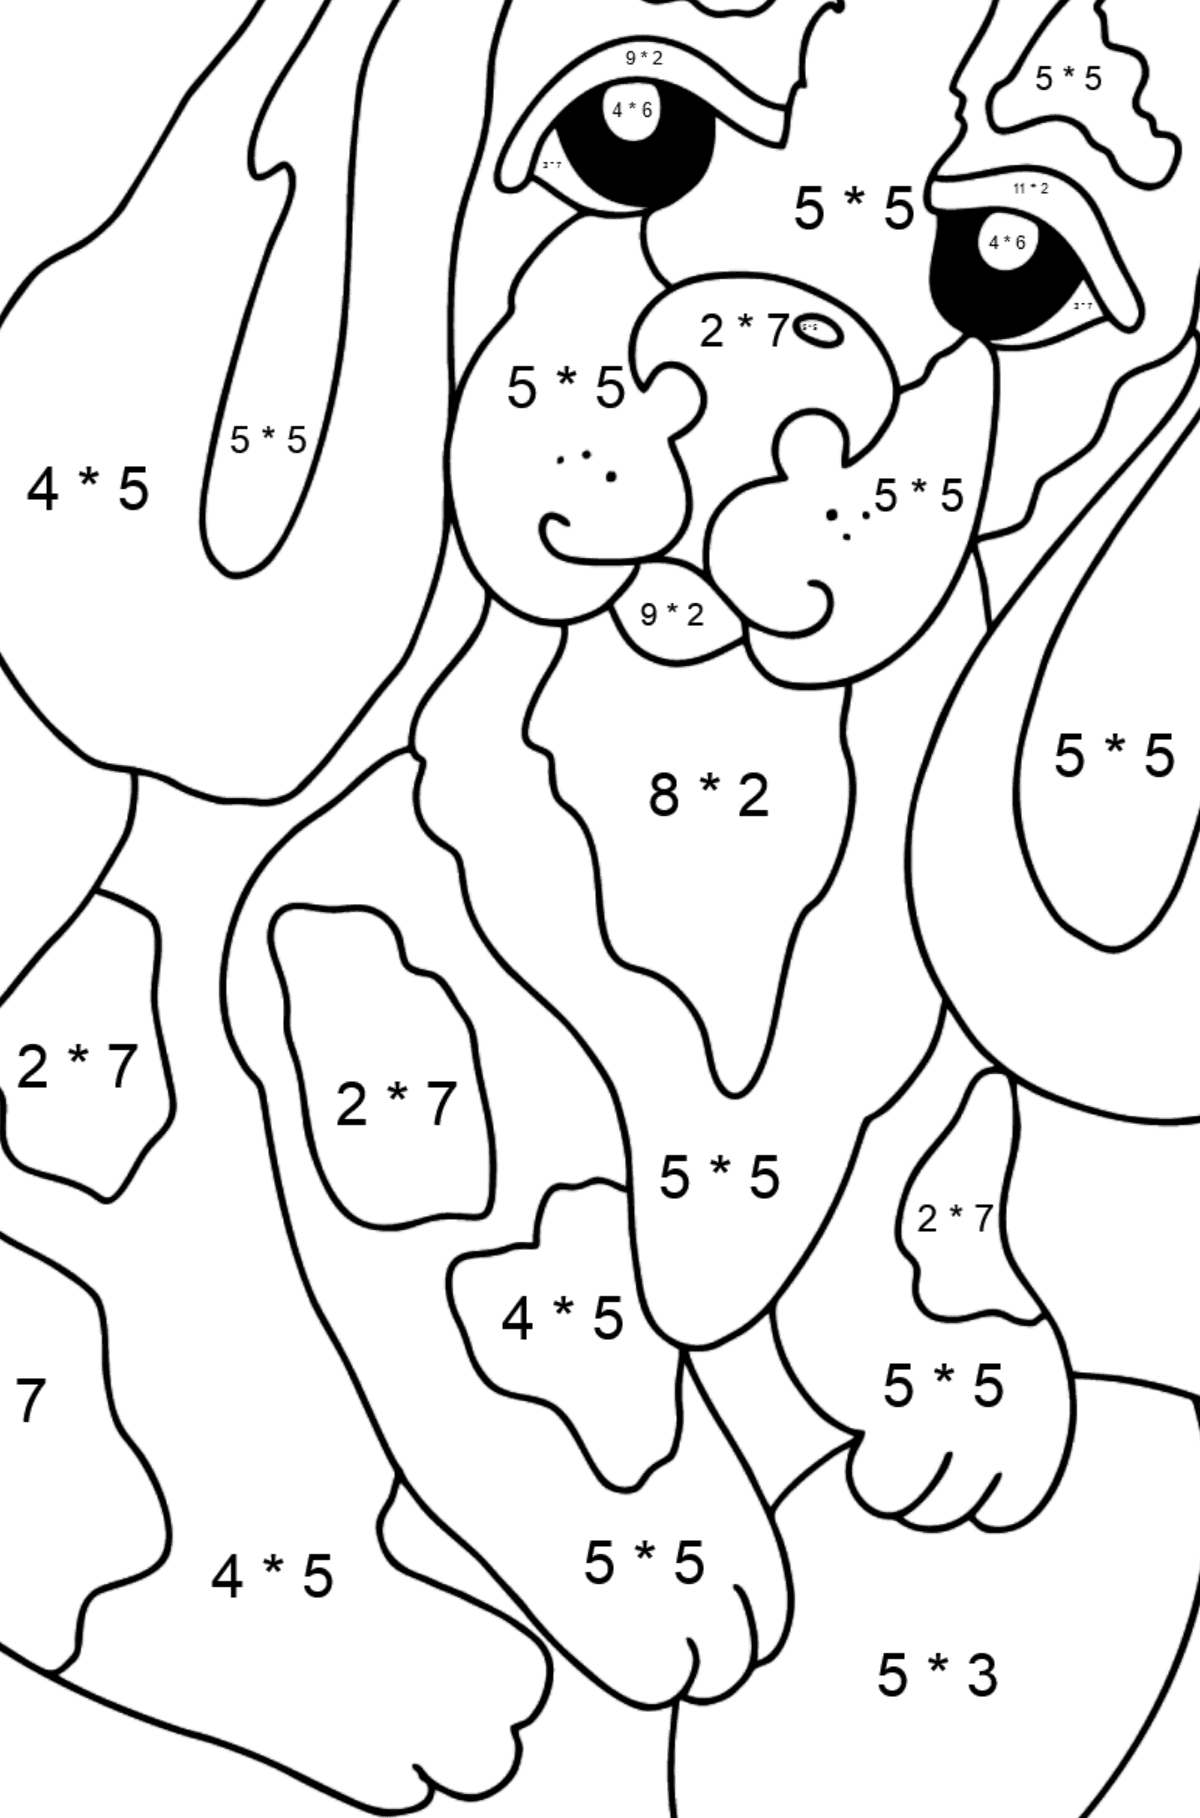 Coloring Page - A Dog with a Ball - Math Coloring - Multiplication for Kids